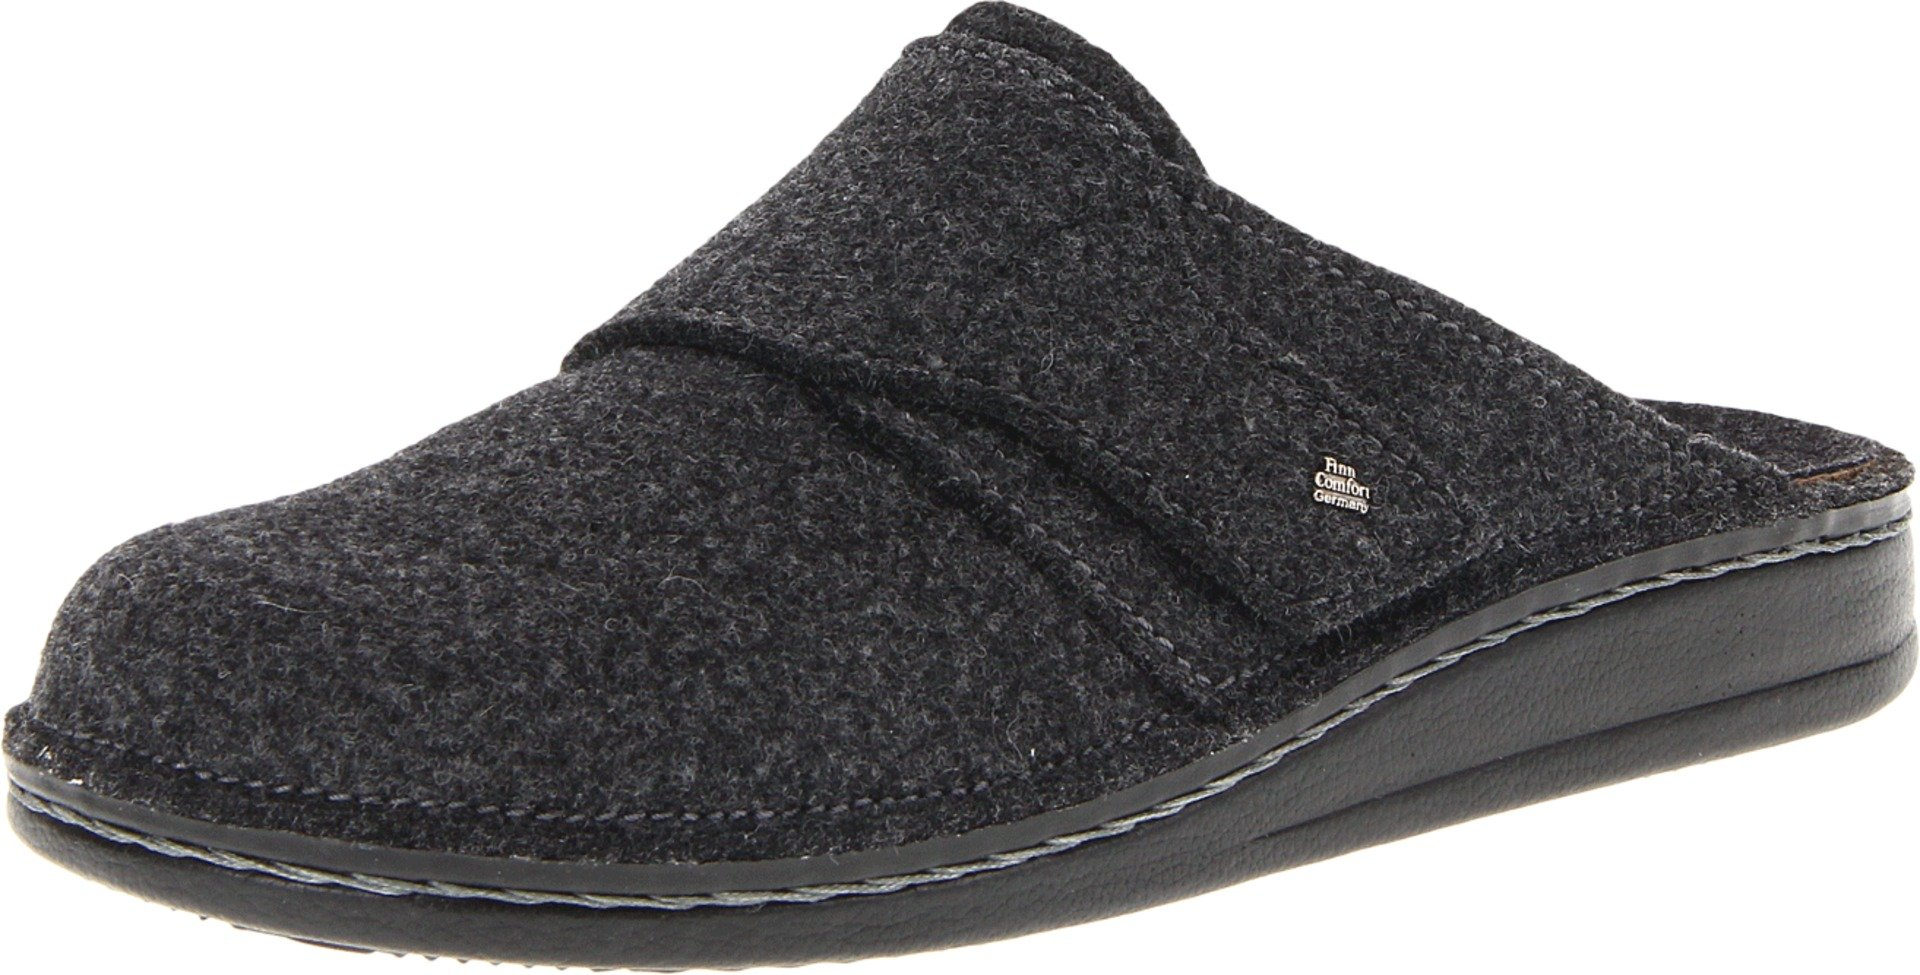 Finn Comfort Unisex Tirol - 6500 Anthrazit Wollfilz Clog/Mule 40 (US Men's 7.5-8, US Women's 10-10.5) Medium